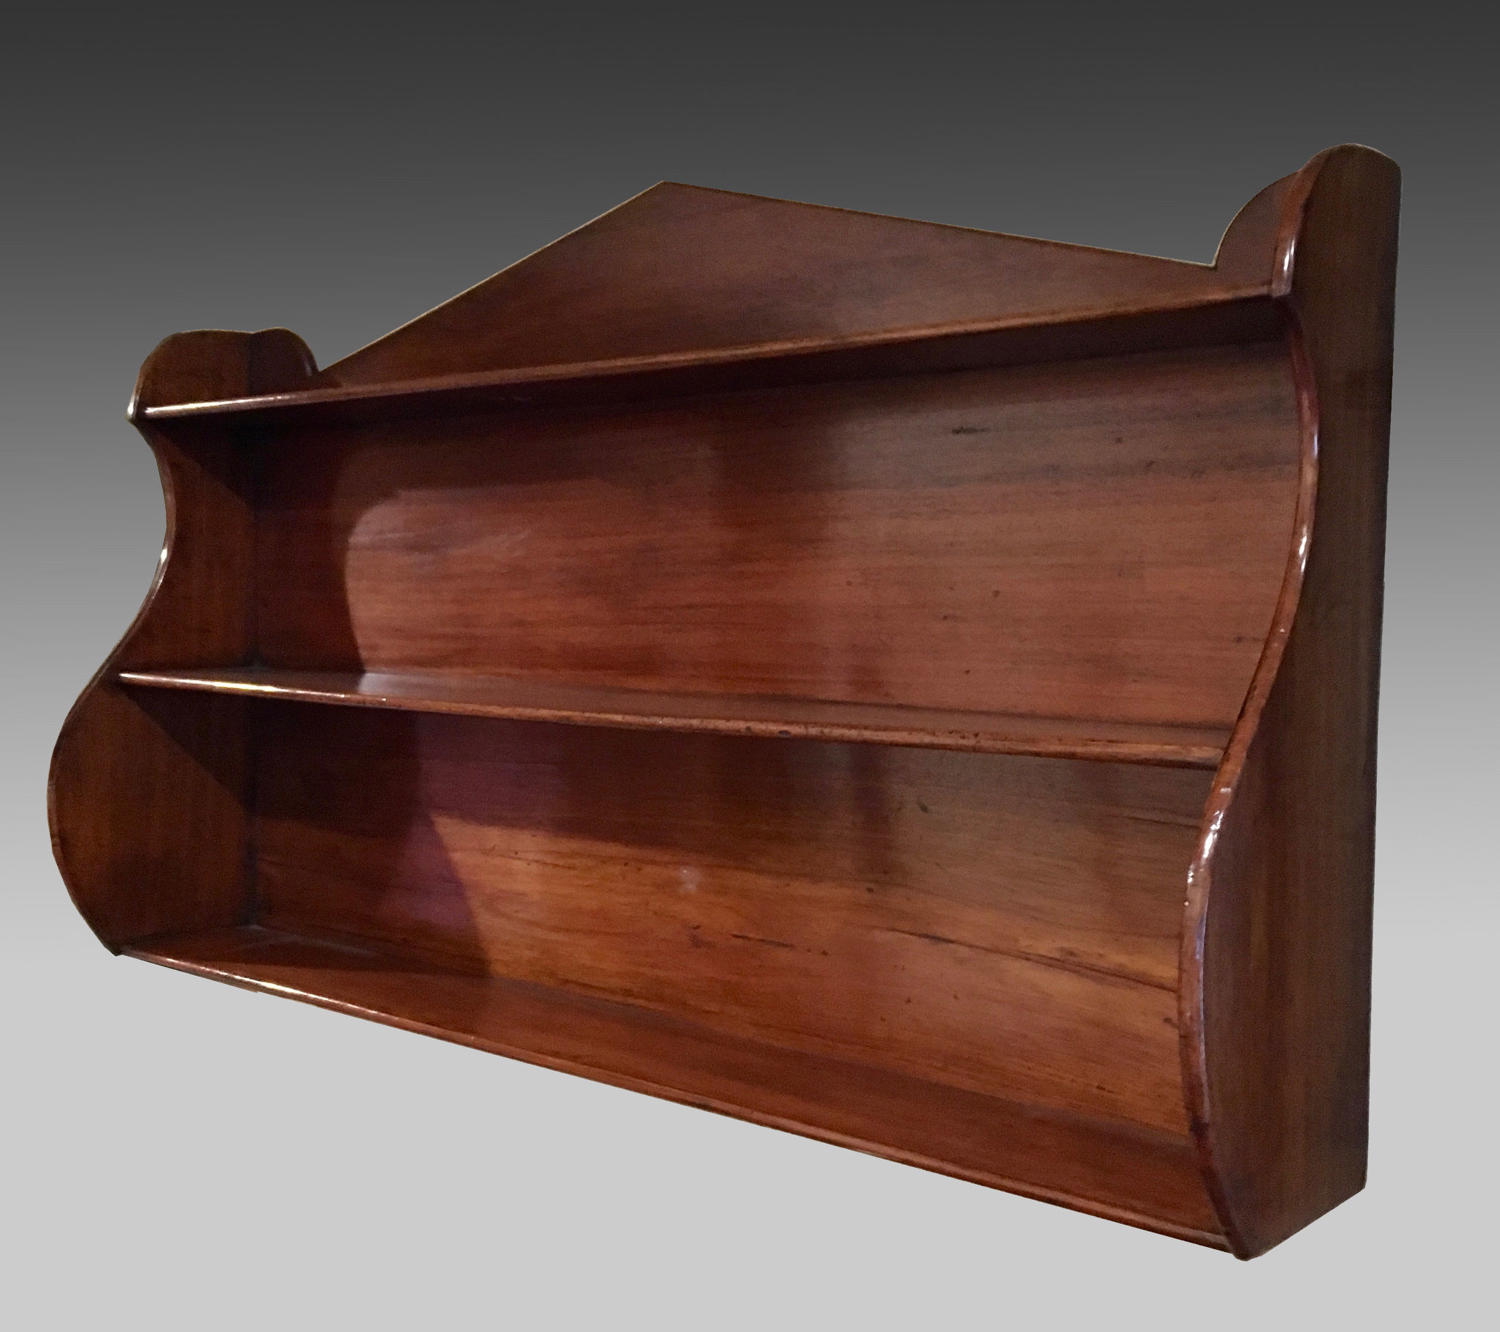 19th century Regency mahogany hanging shelves